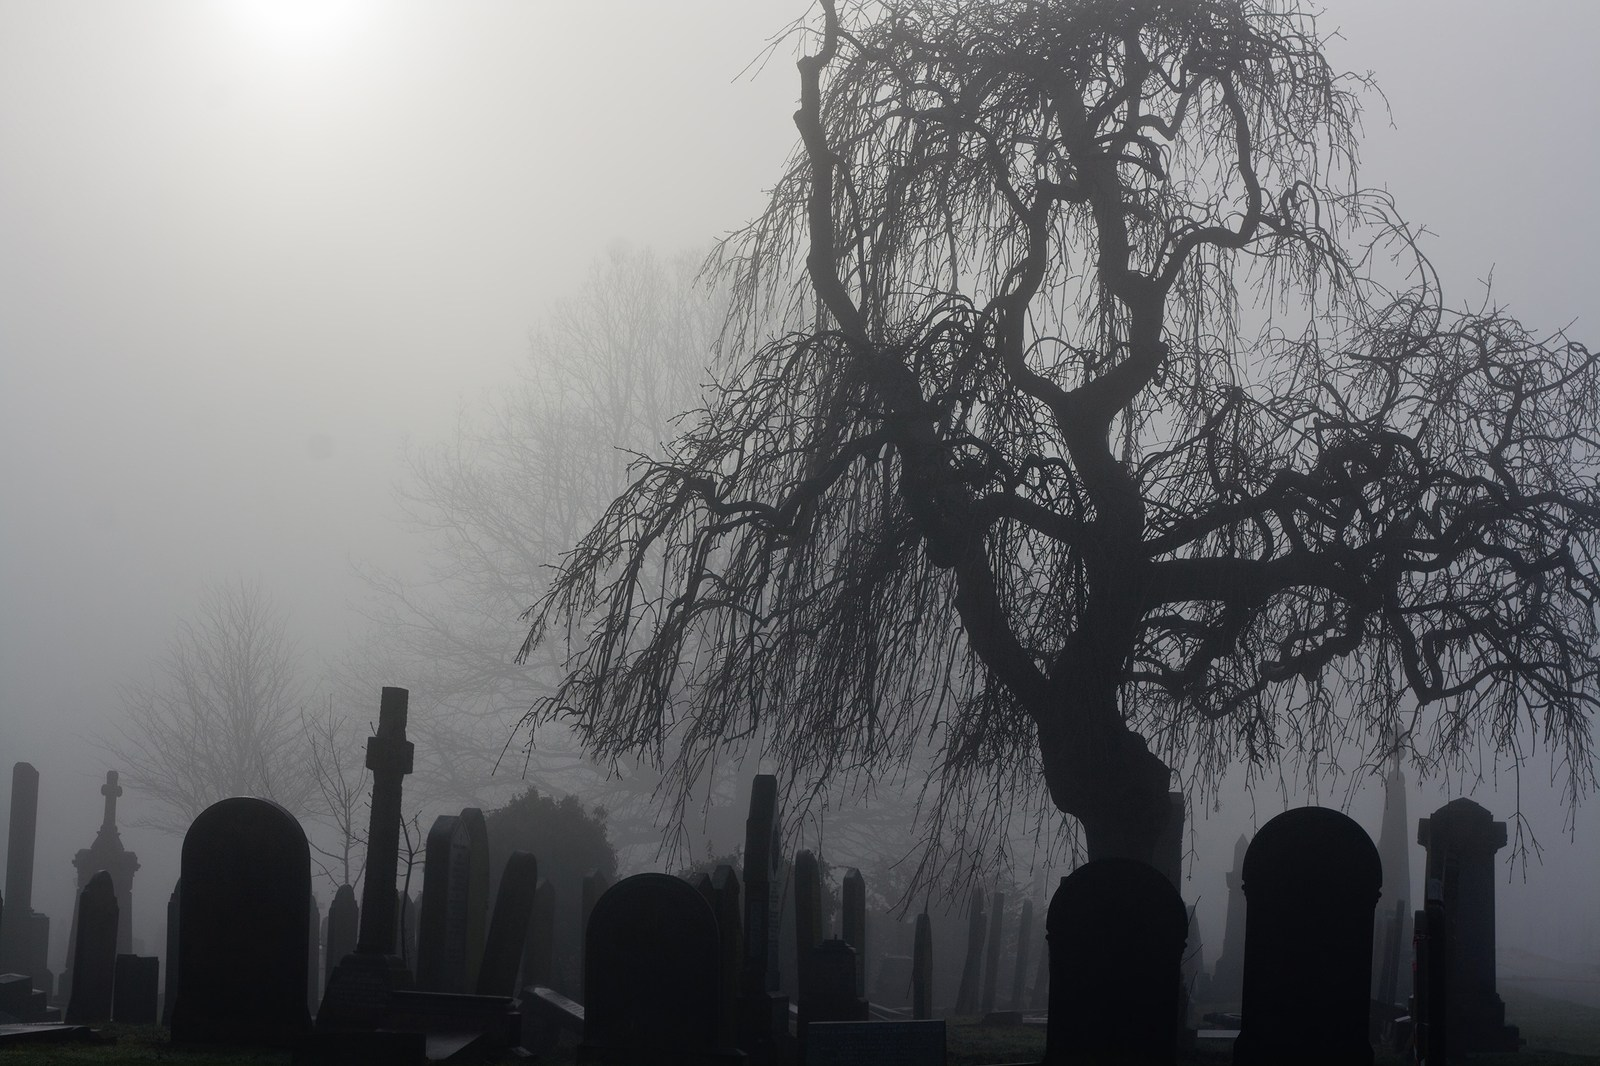 More People Will Die This Week Than Any Other Weeks Of The Year